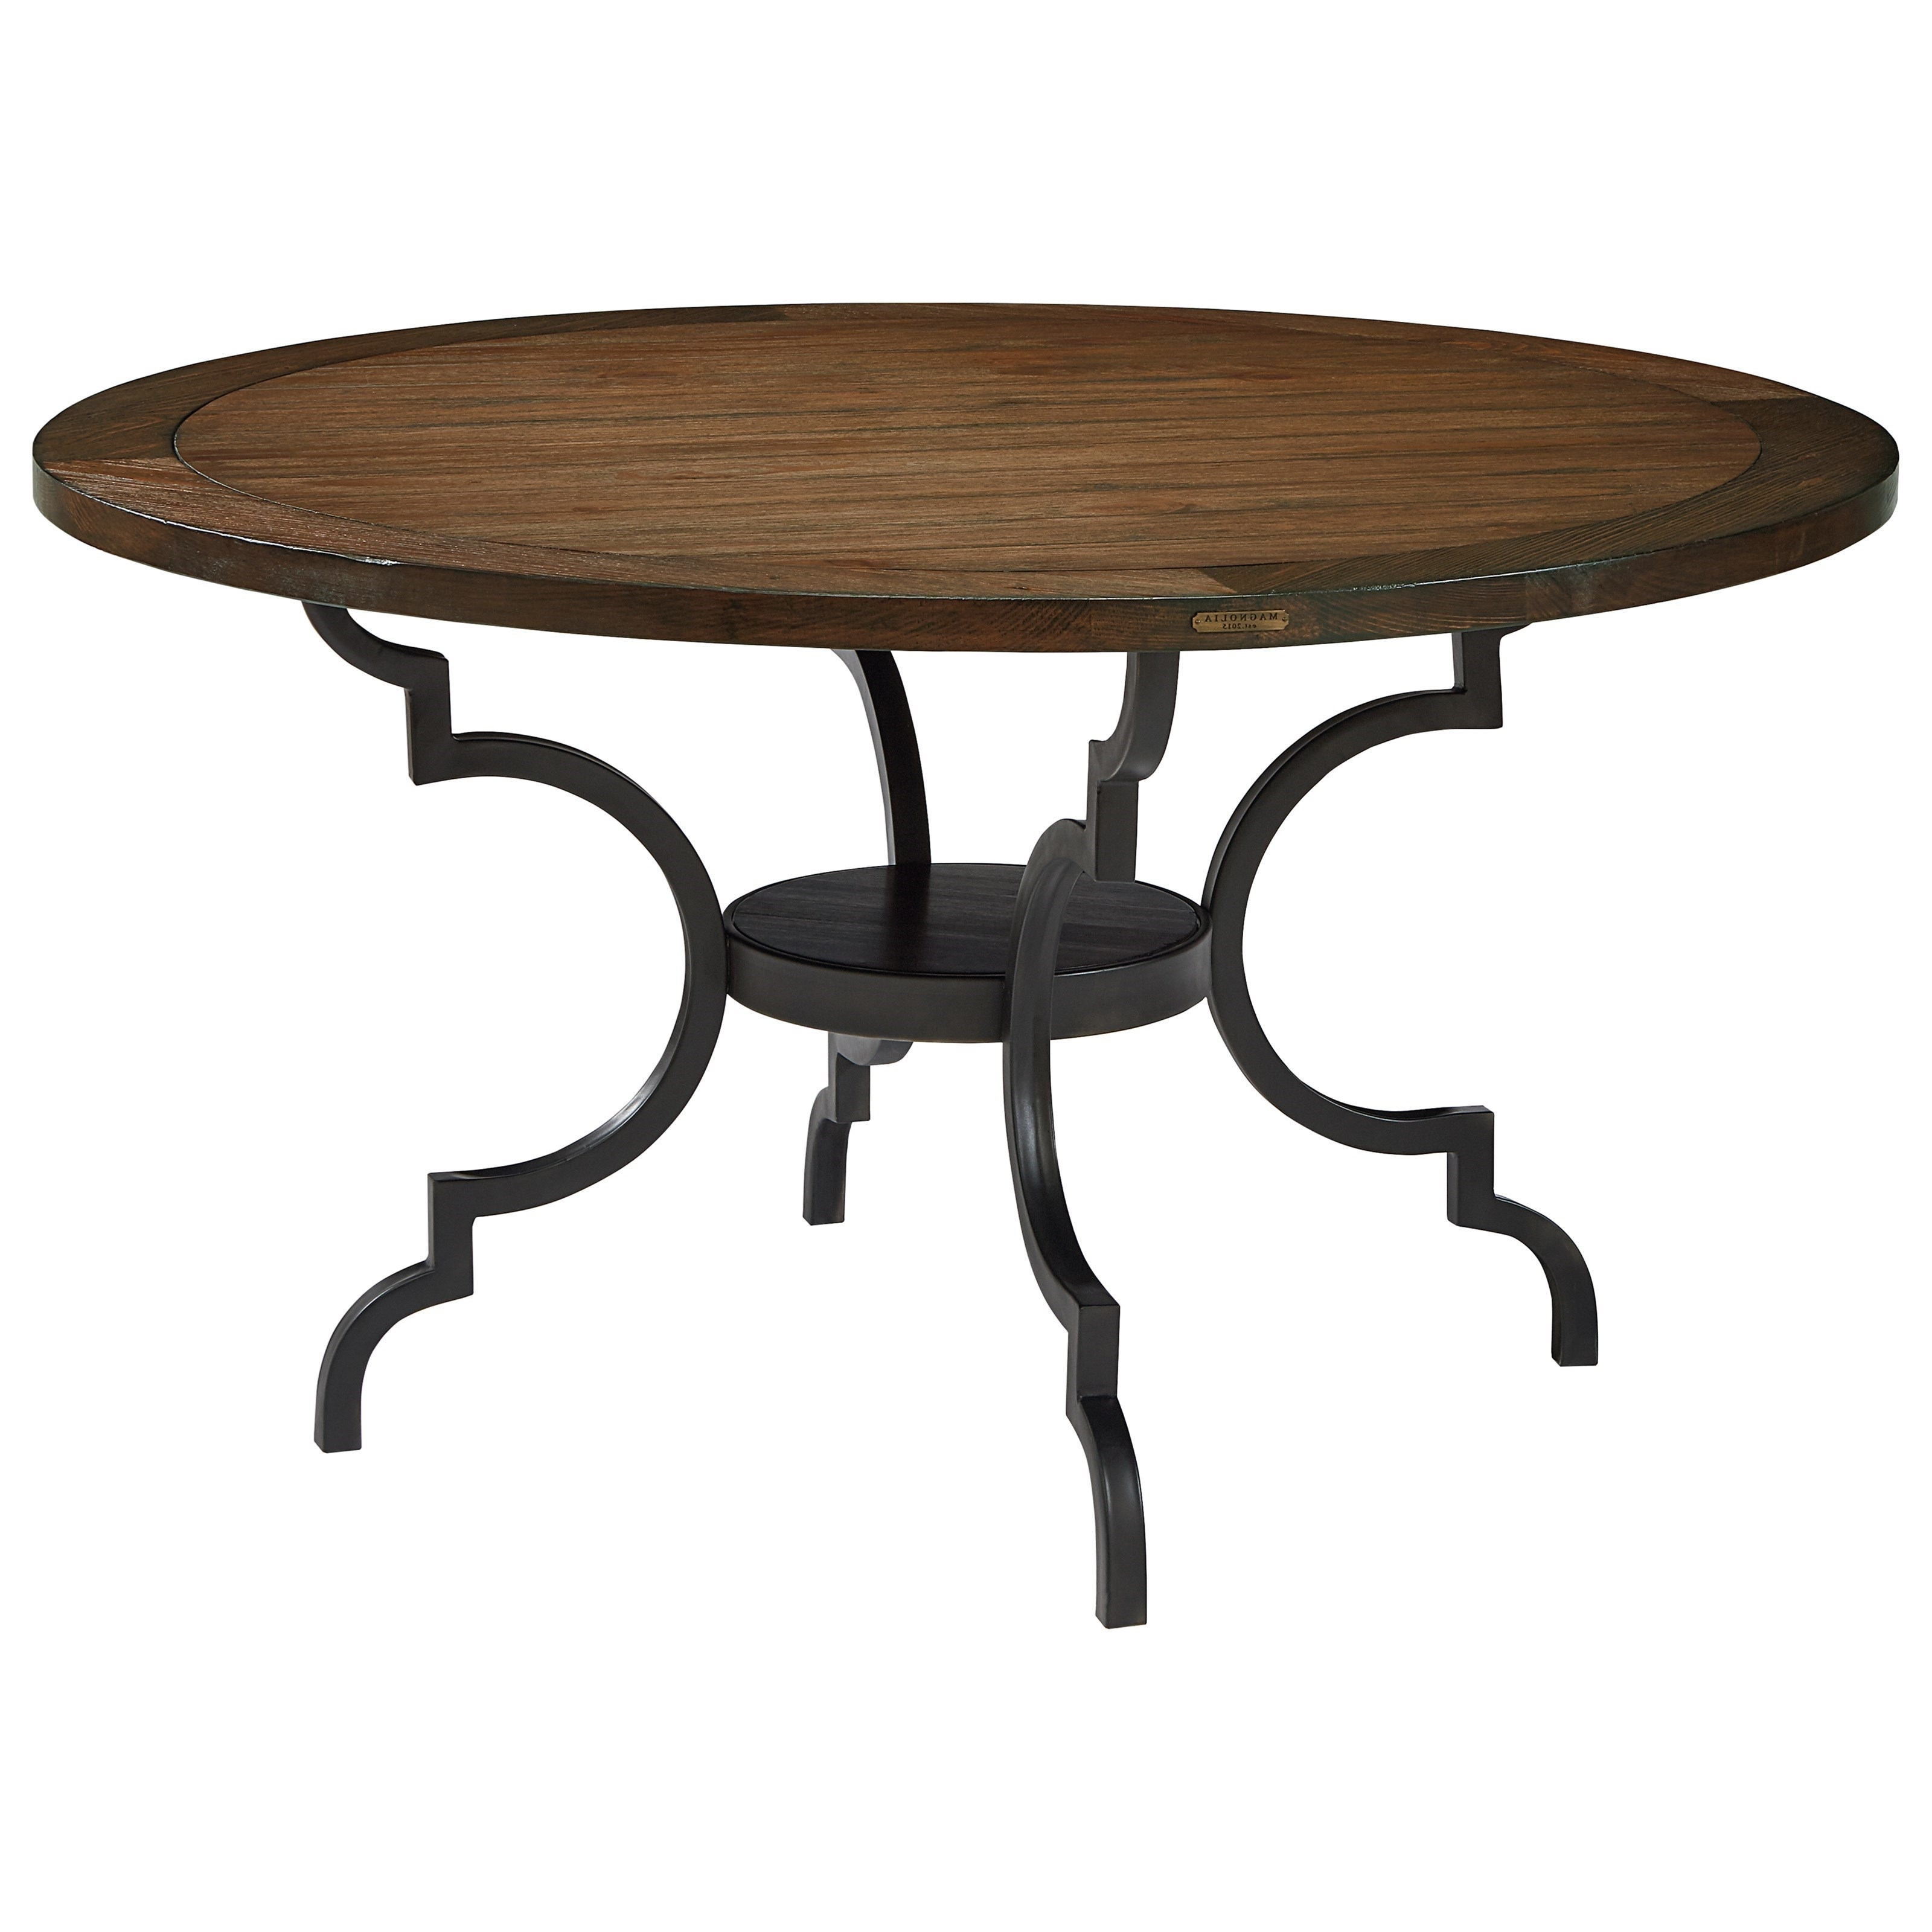 Best And Newest Magnolia Home Breakfast Round Black Dining Tables Intended For Magnolia Homejoanna Gaines French Inspired Breakfast Table (View 2 of 25)